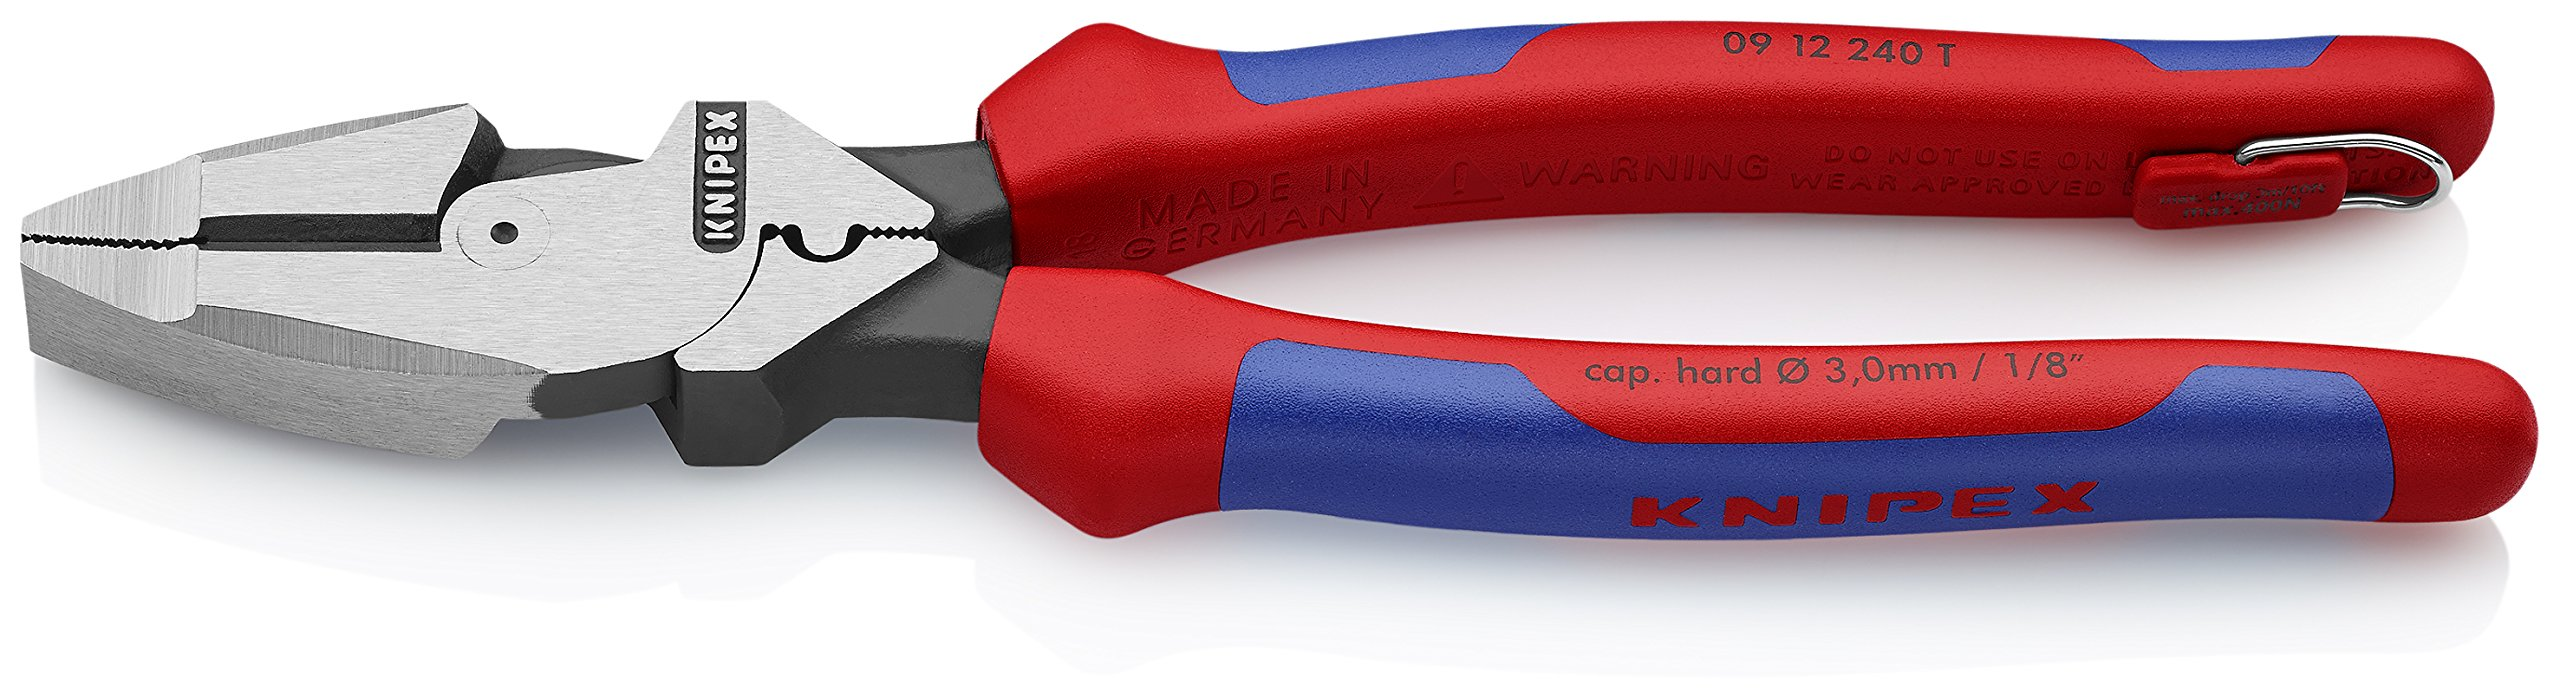 Knipex Tools 09 12 240 T BKA 9 1/4'' Ultra-High Leverage Lineman's Pliers with Fish Tape Puller, Crimper, Tether Attachment